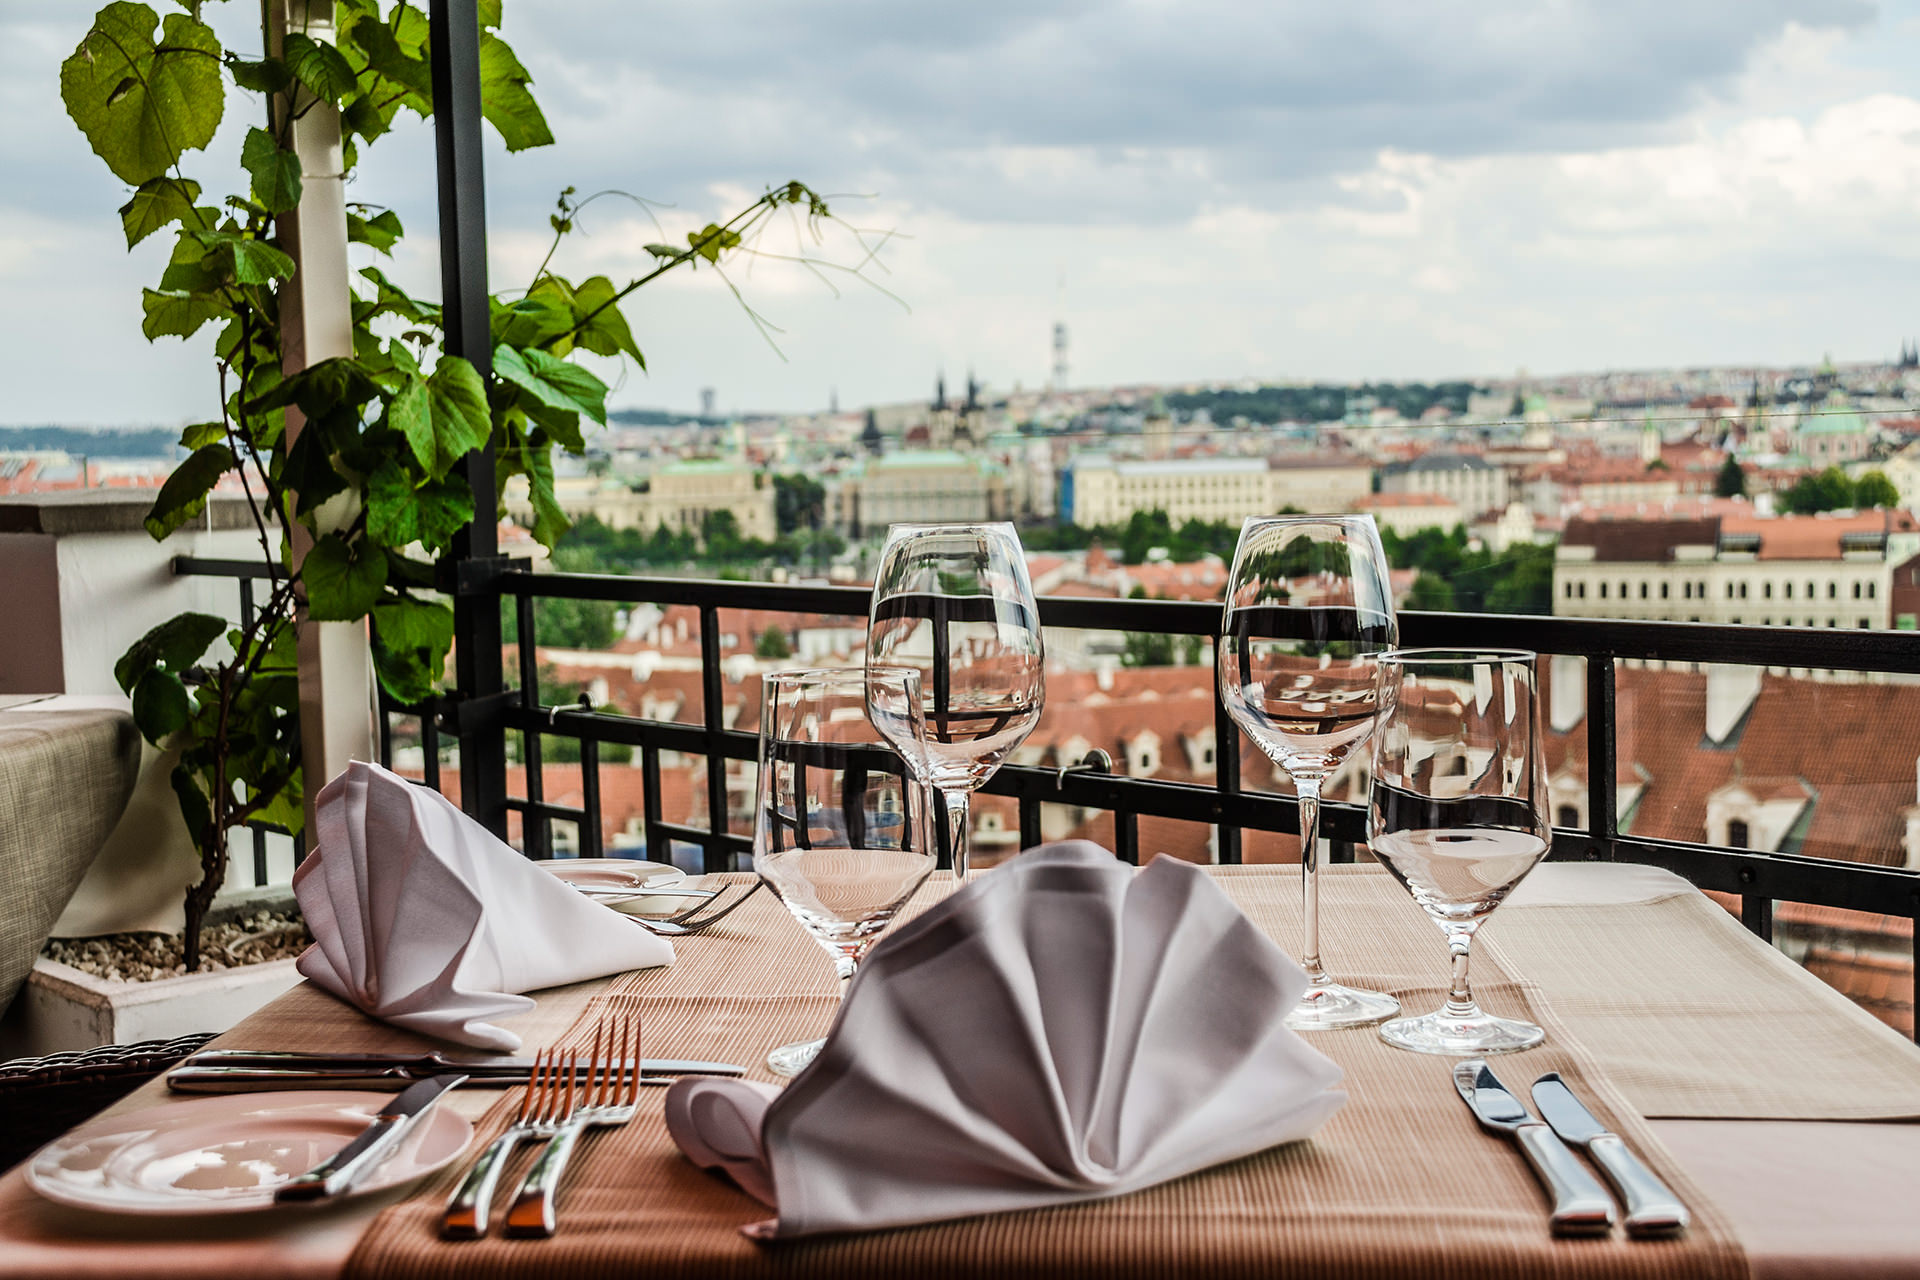 Lviv Restaurants and Bars 2017 with Best City Views